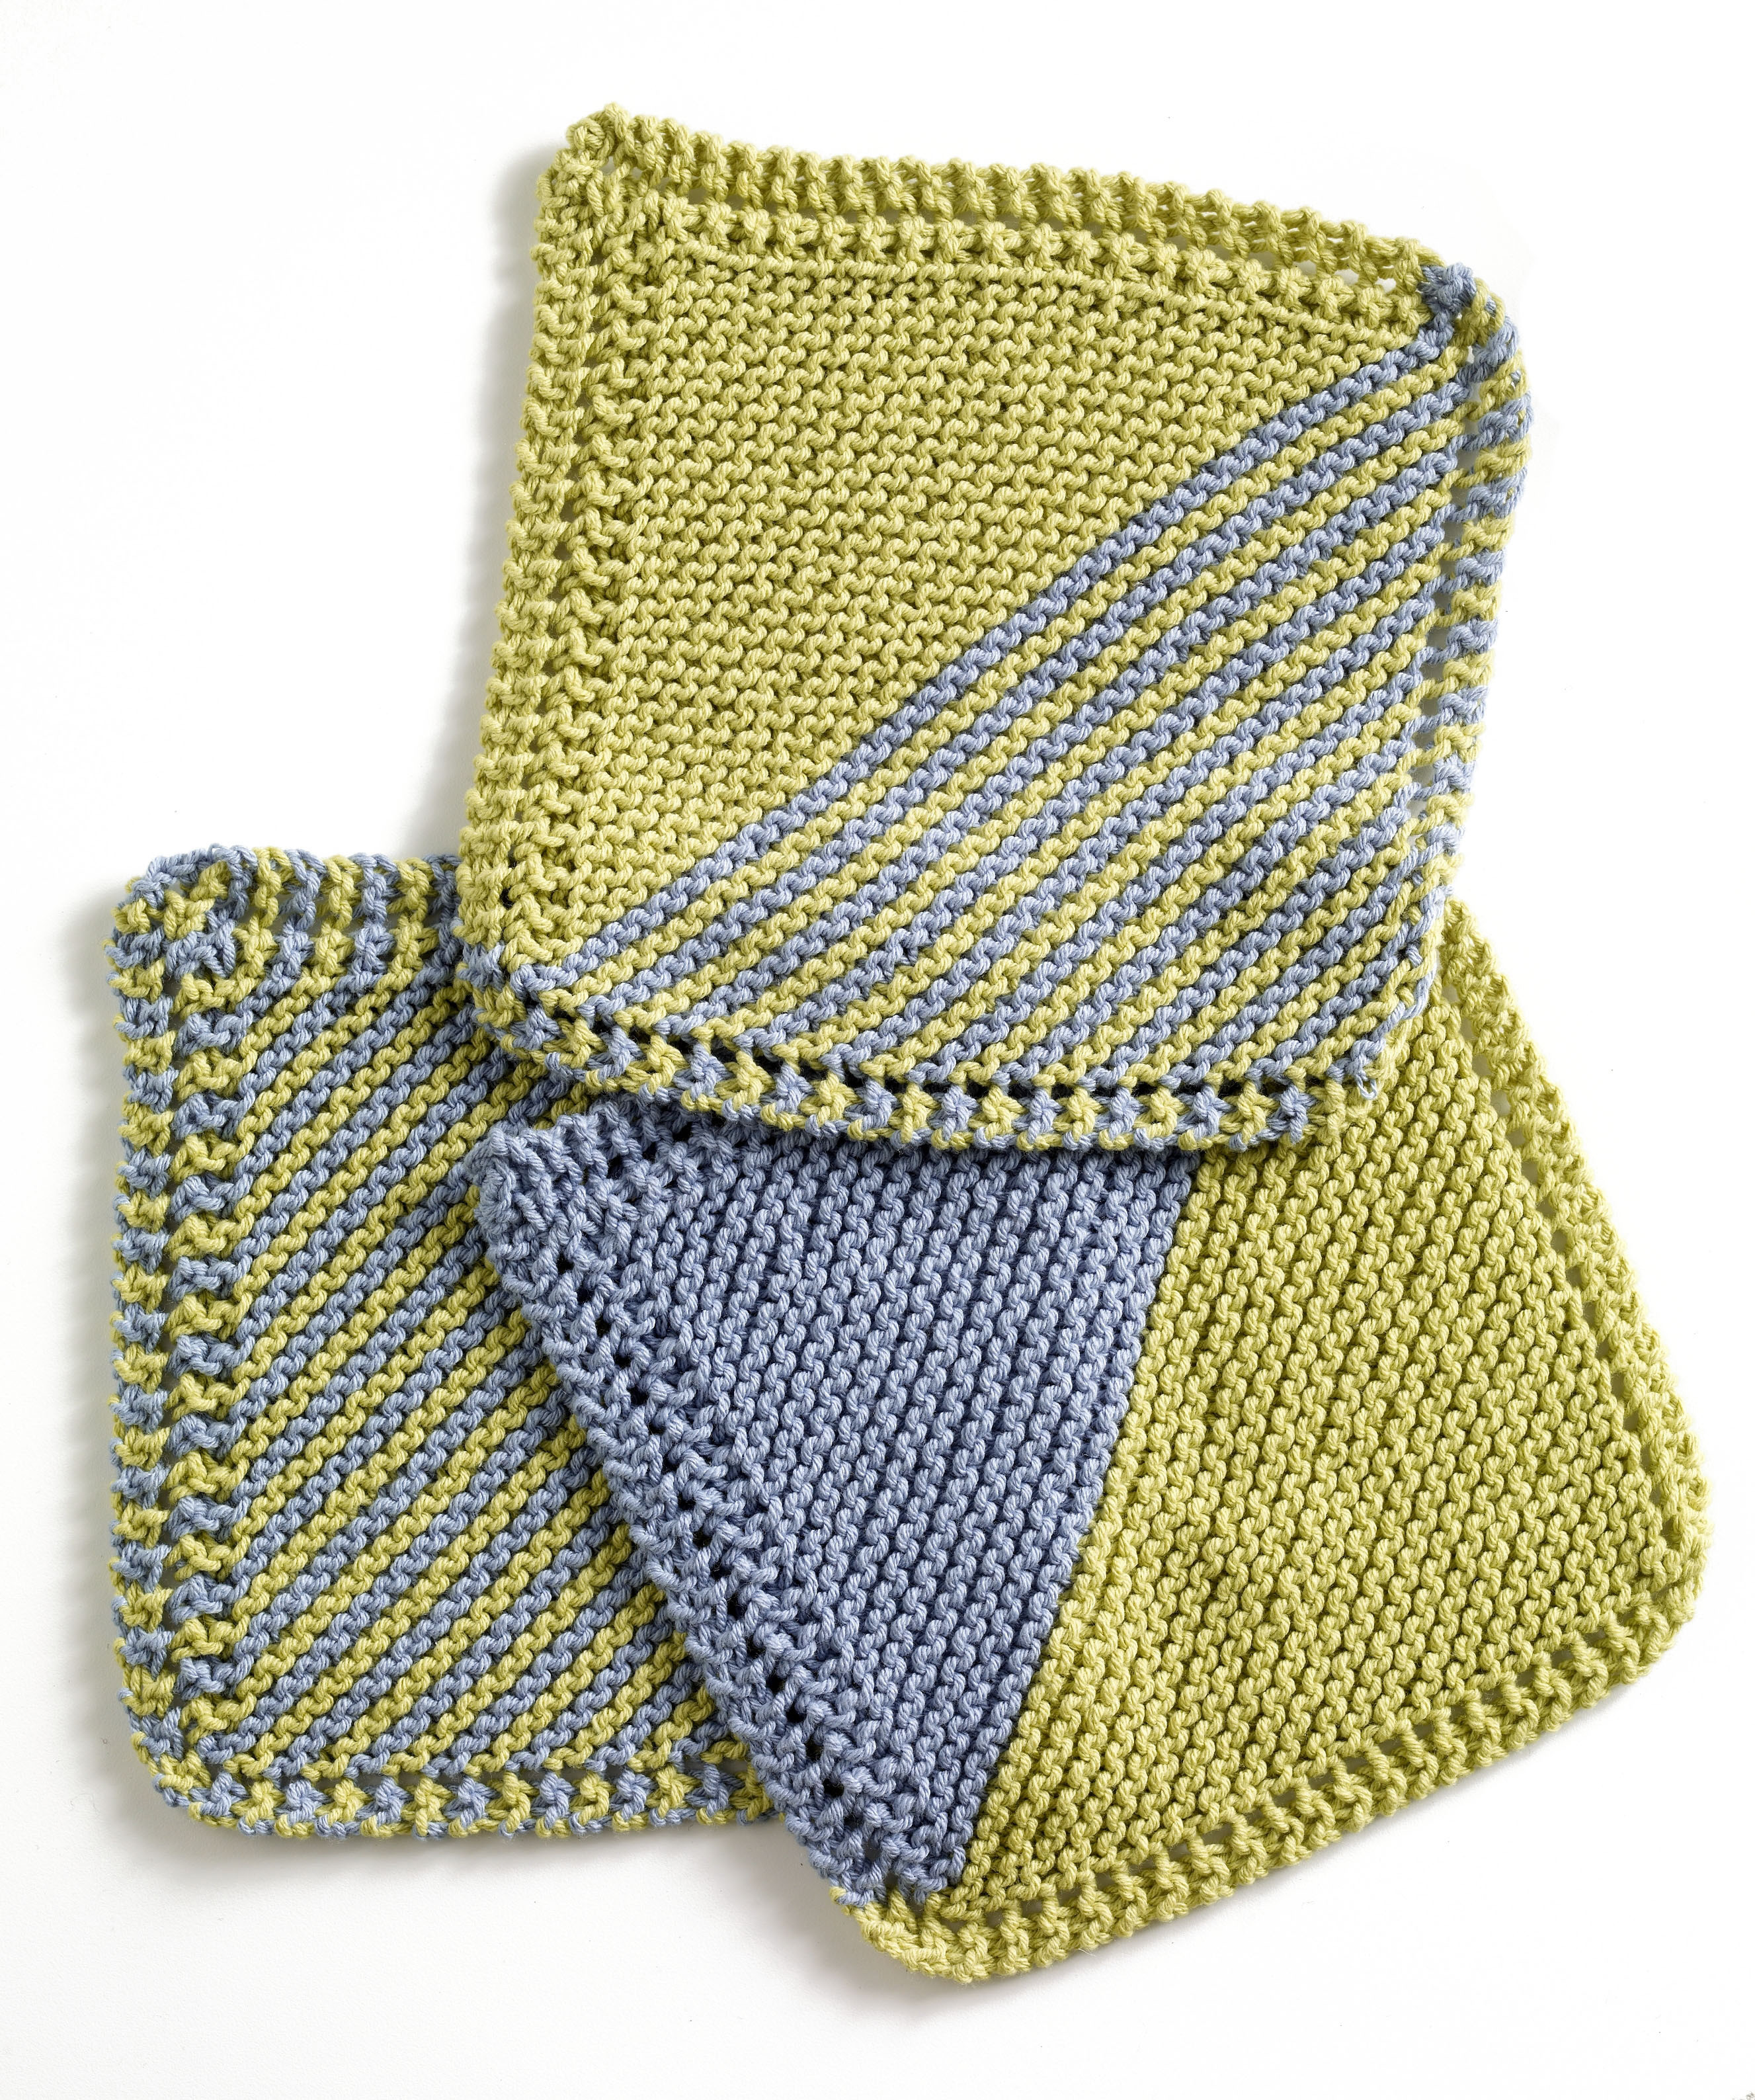 Best Of Garter Square Washcloths In Lion Brand Cotton Ease Knit Washcloth Of Beautiful 44 Models Knit Washcloth